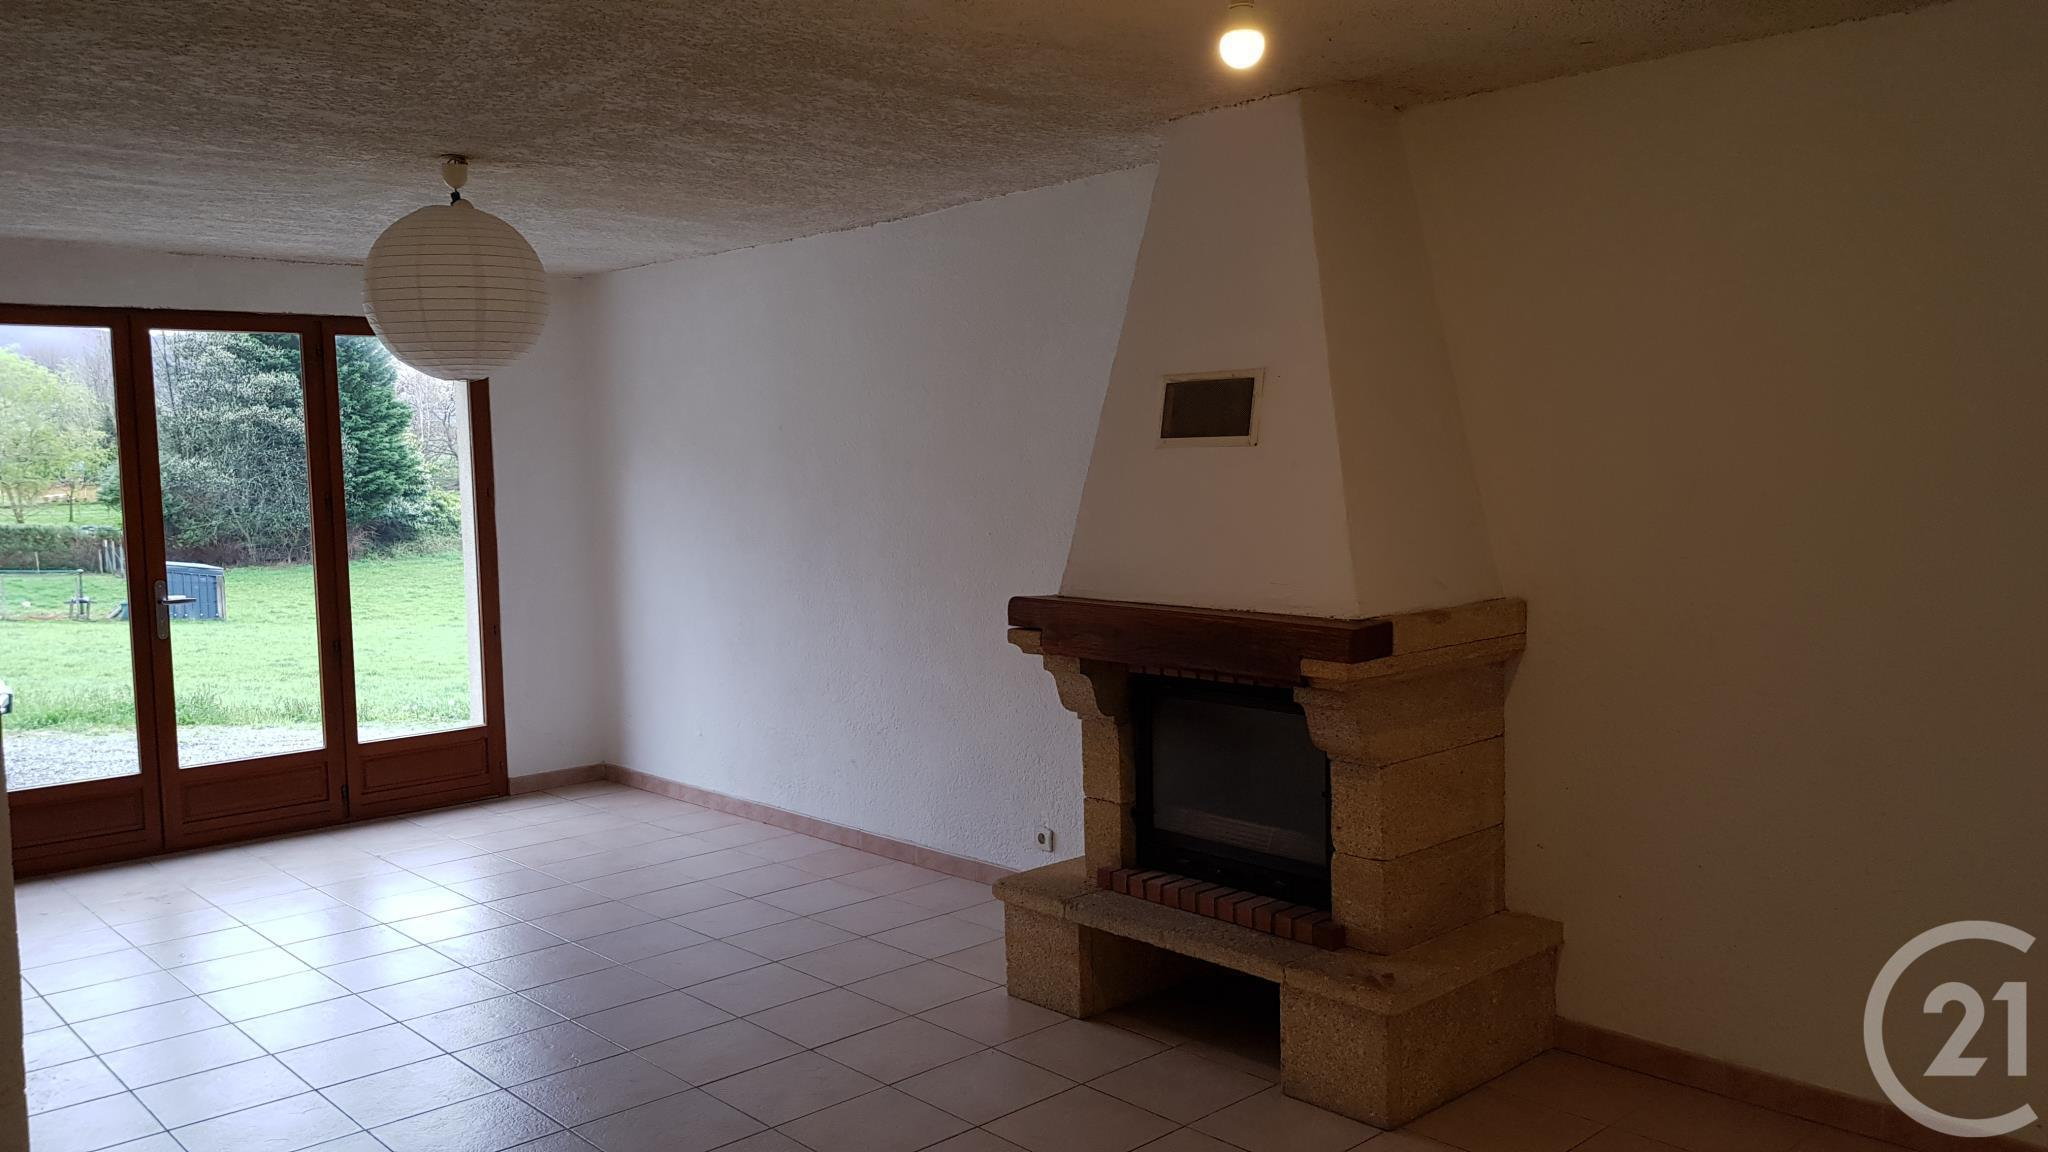 Appartement F4 à louer - 4 pièces - 72 m2 - HECHES - 65 - MIDI-PYRENEES